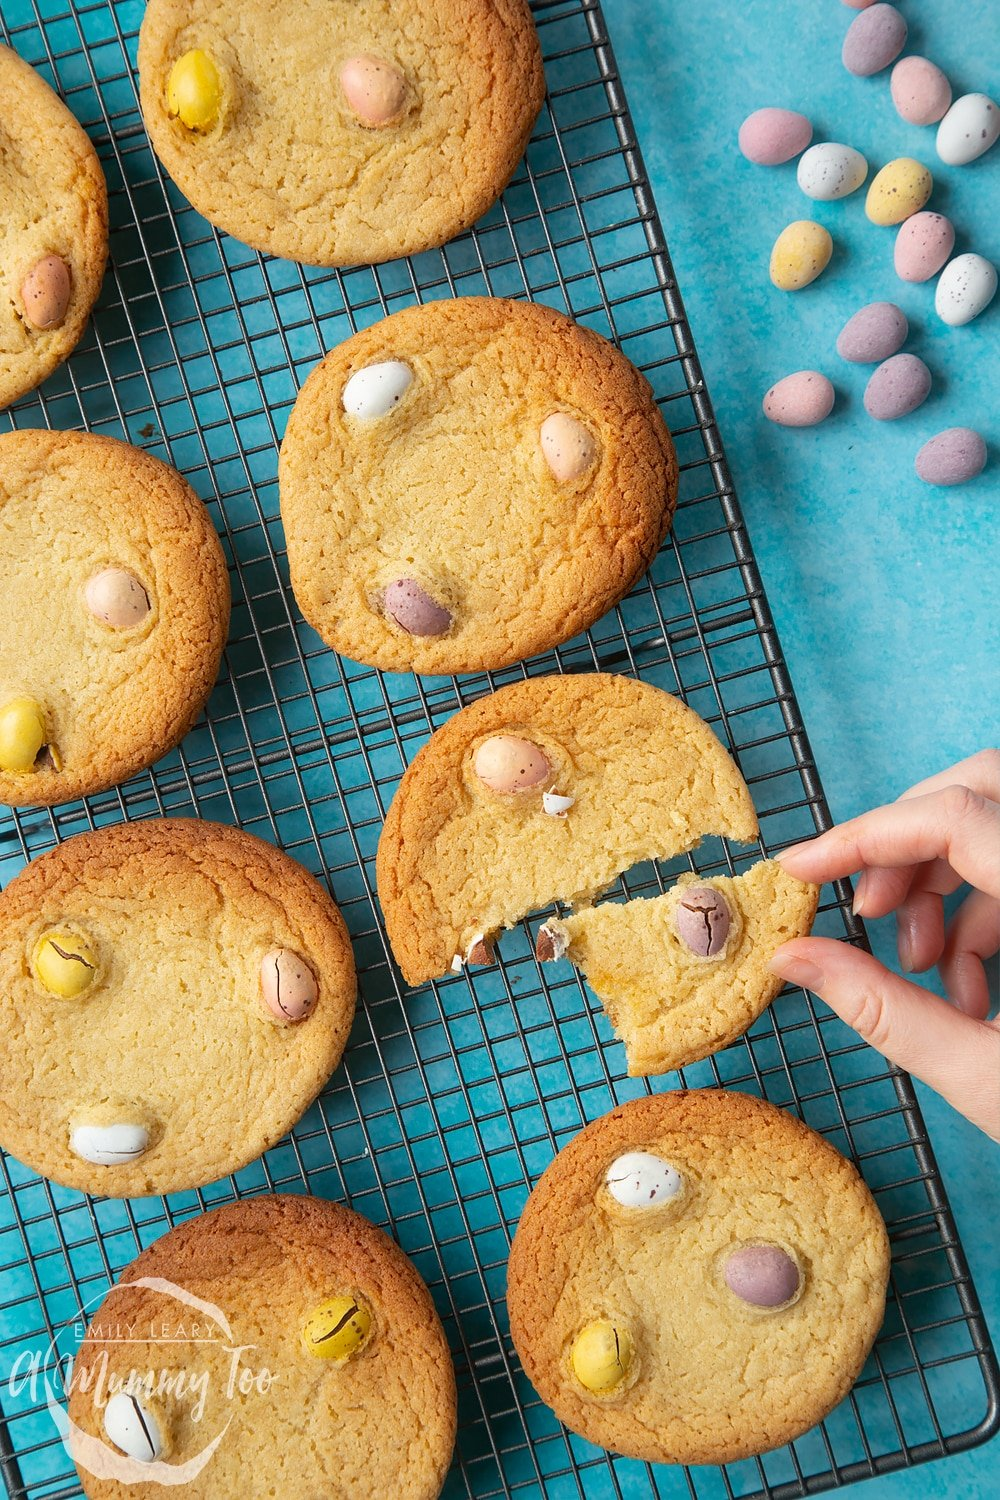 Overhead shot of a hand holding an Easter cookie with mini eggs with a mummy too logo in the lower-right corner